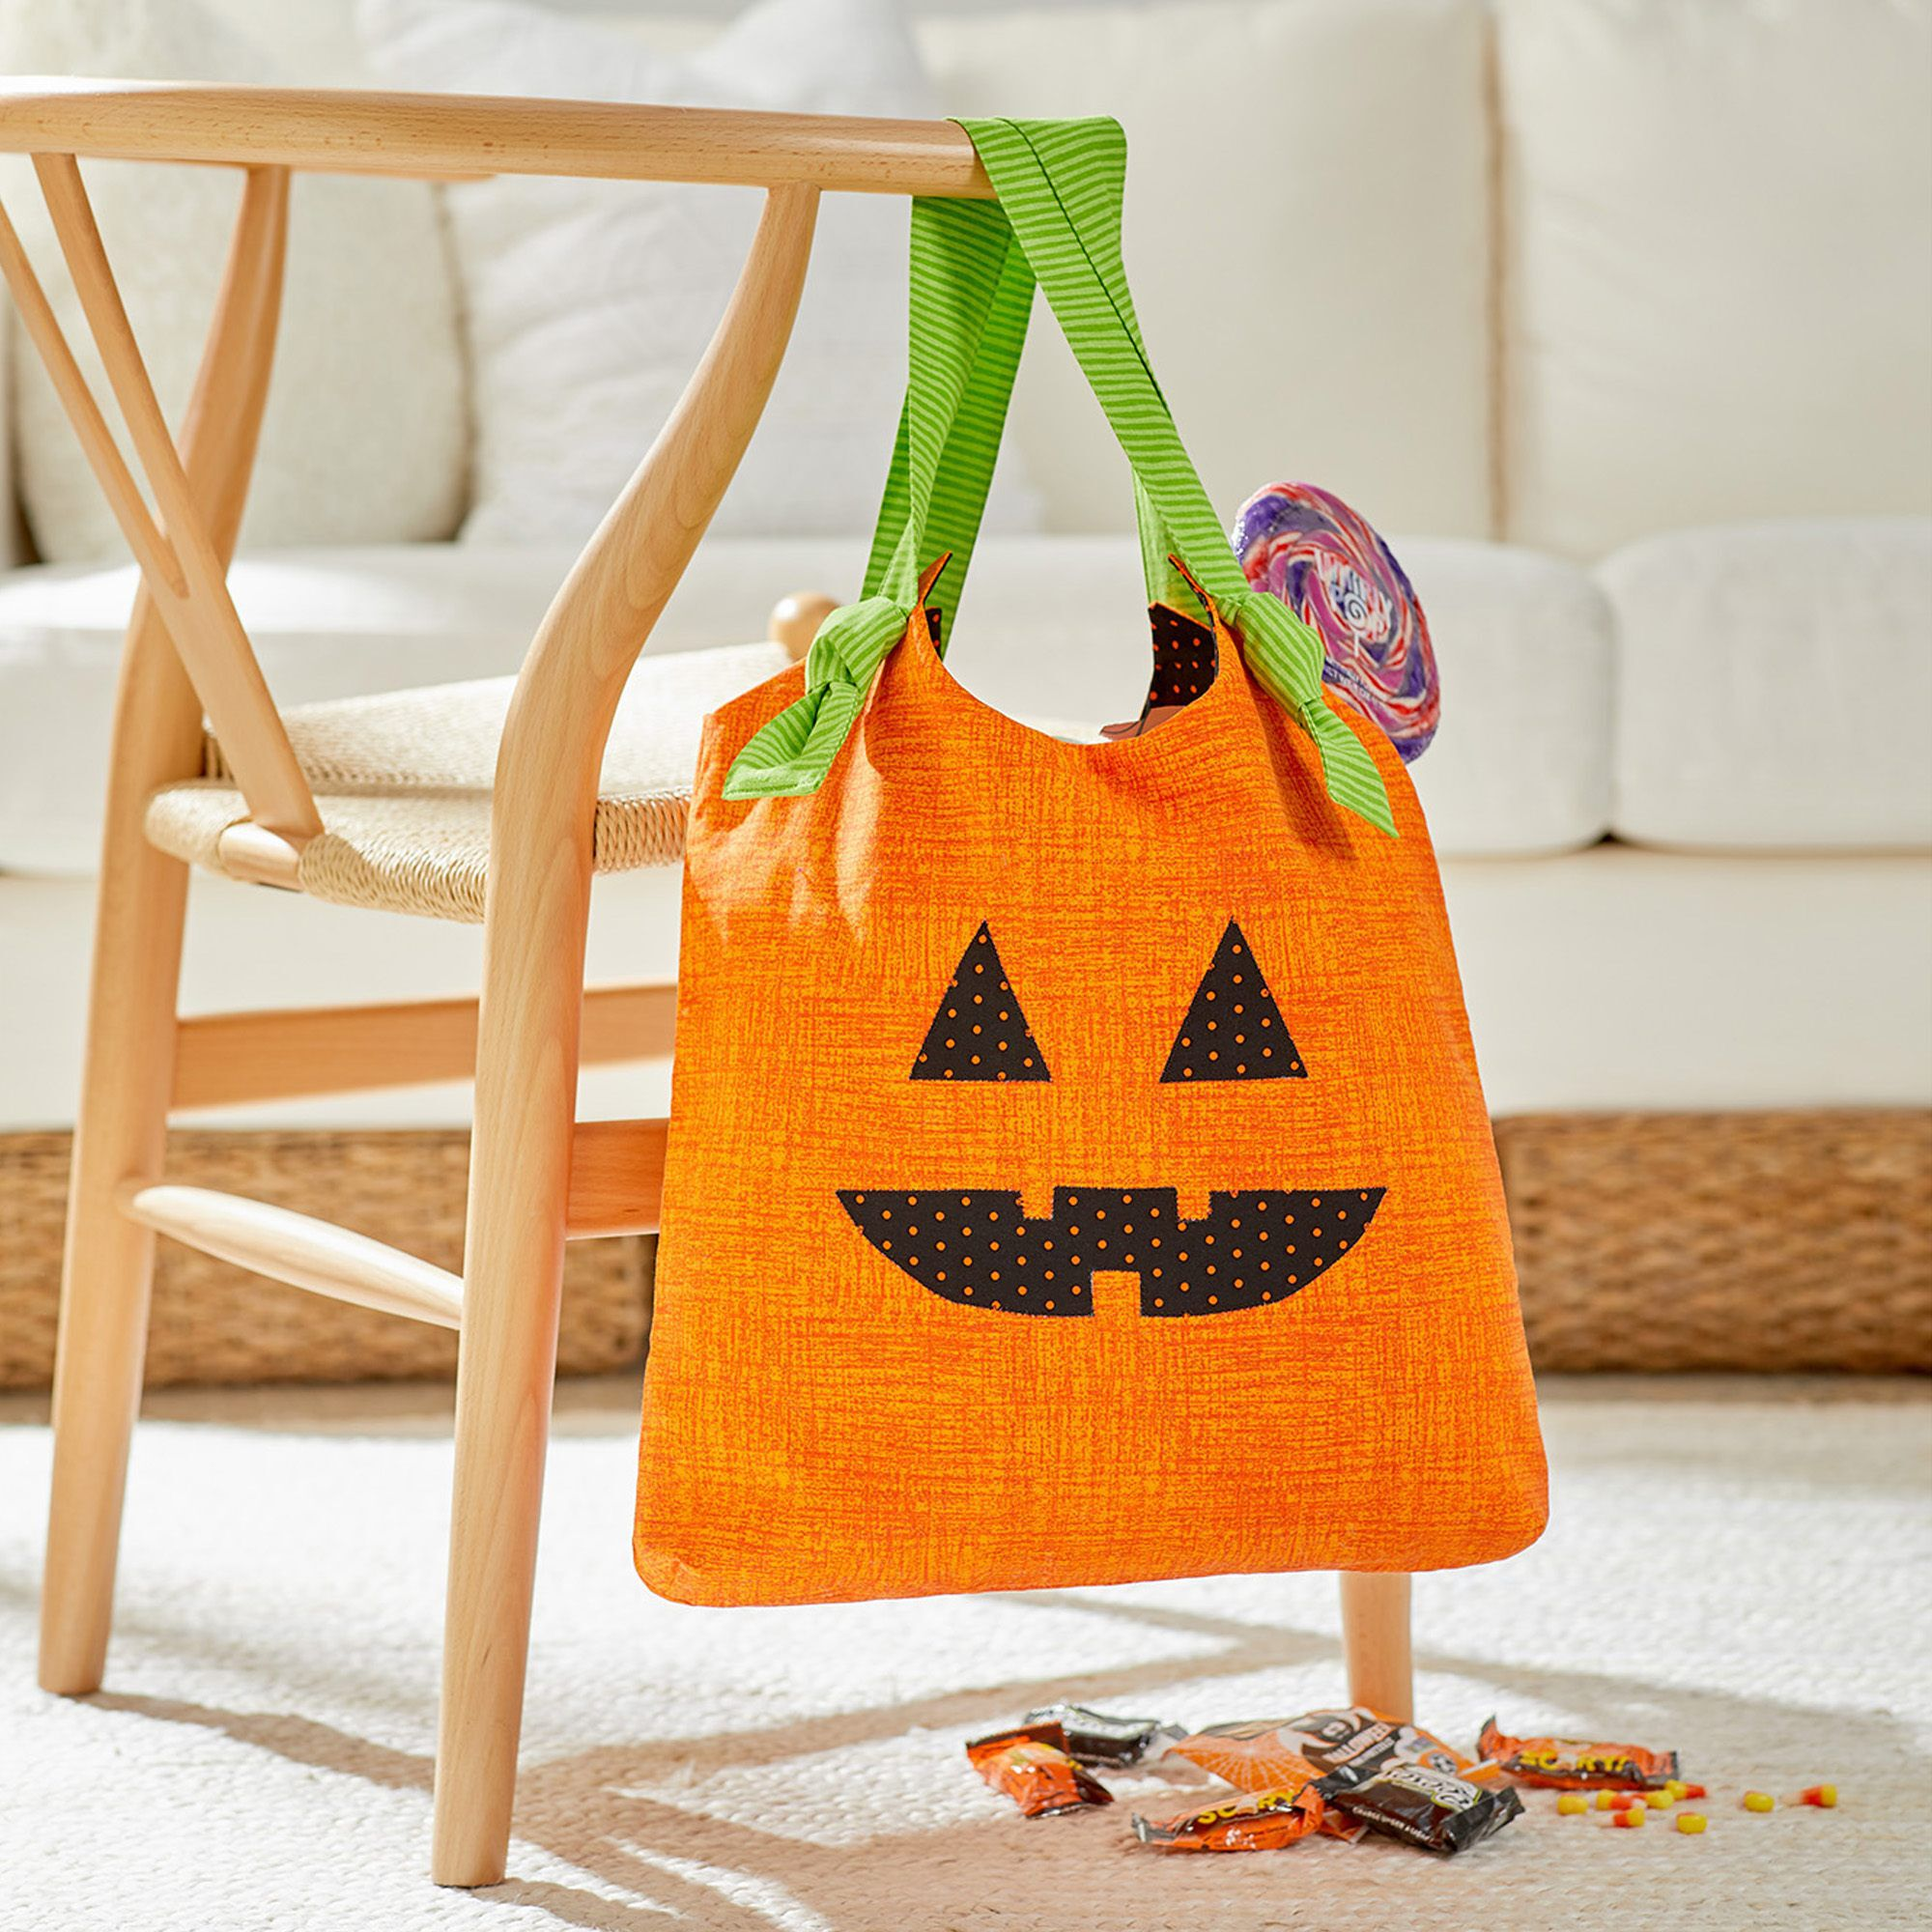 DUAL DUTY JACK O' LANTERN TOTE FOR HALLOWEEN